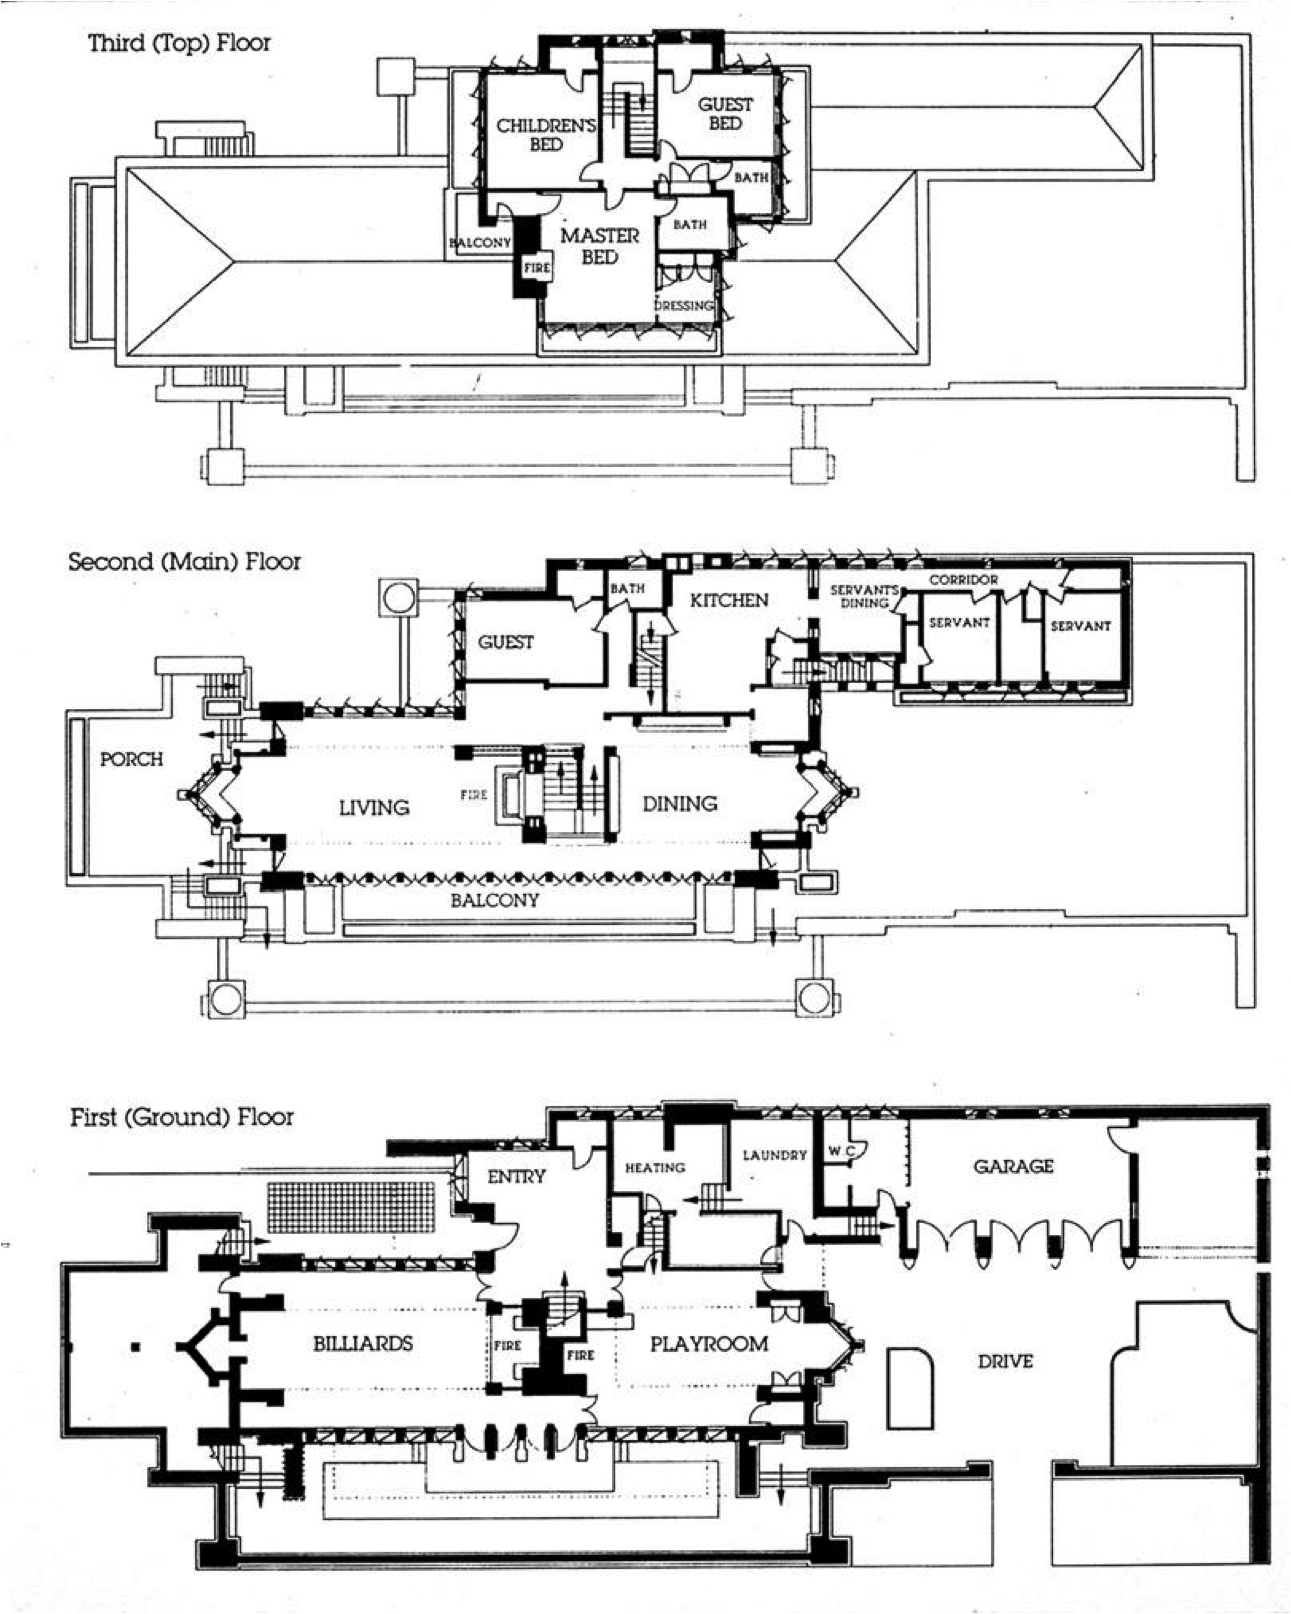 Frank lloyd wright house plans pesquisa google plans Frank lloyd wright floor plan